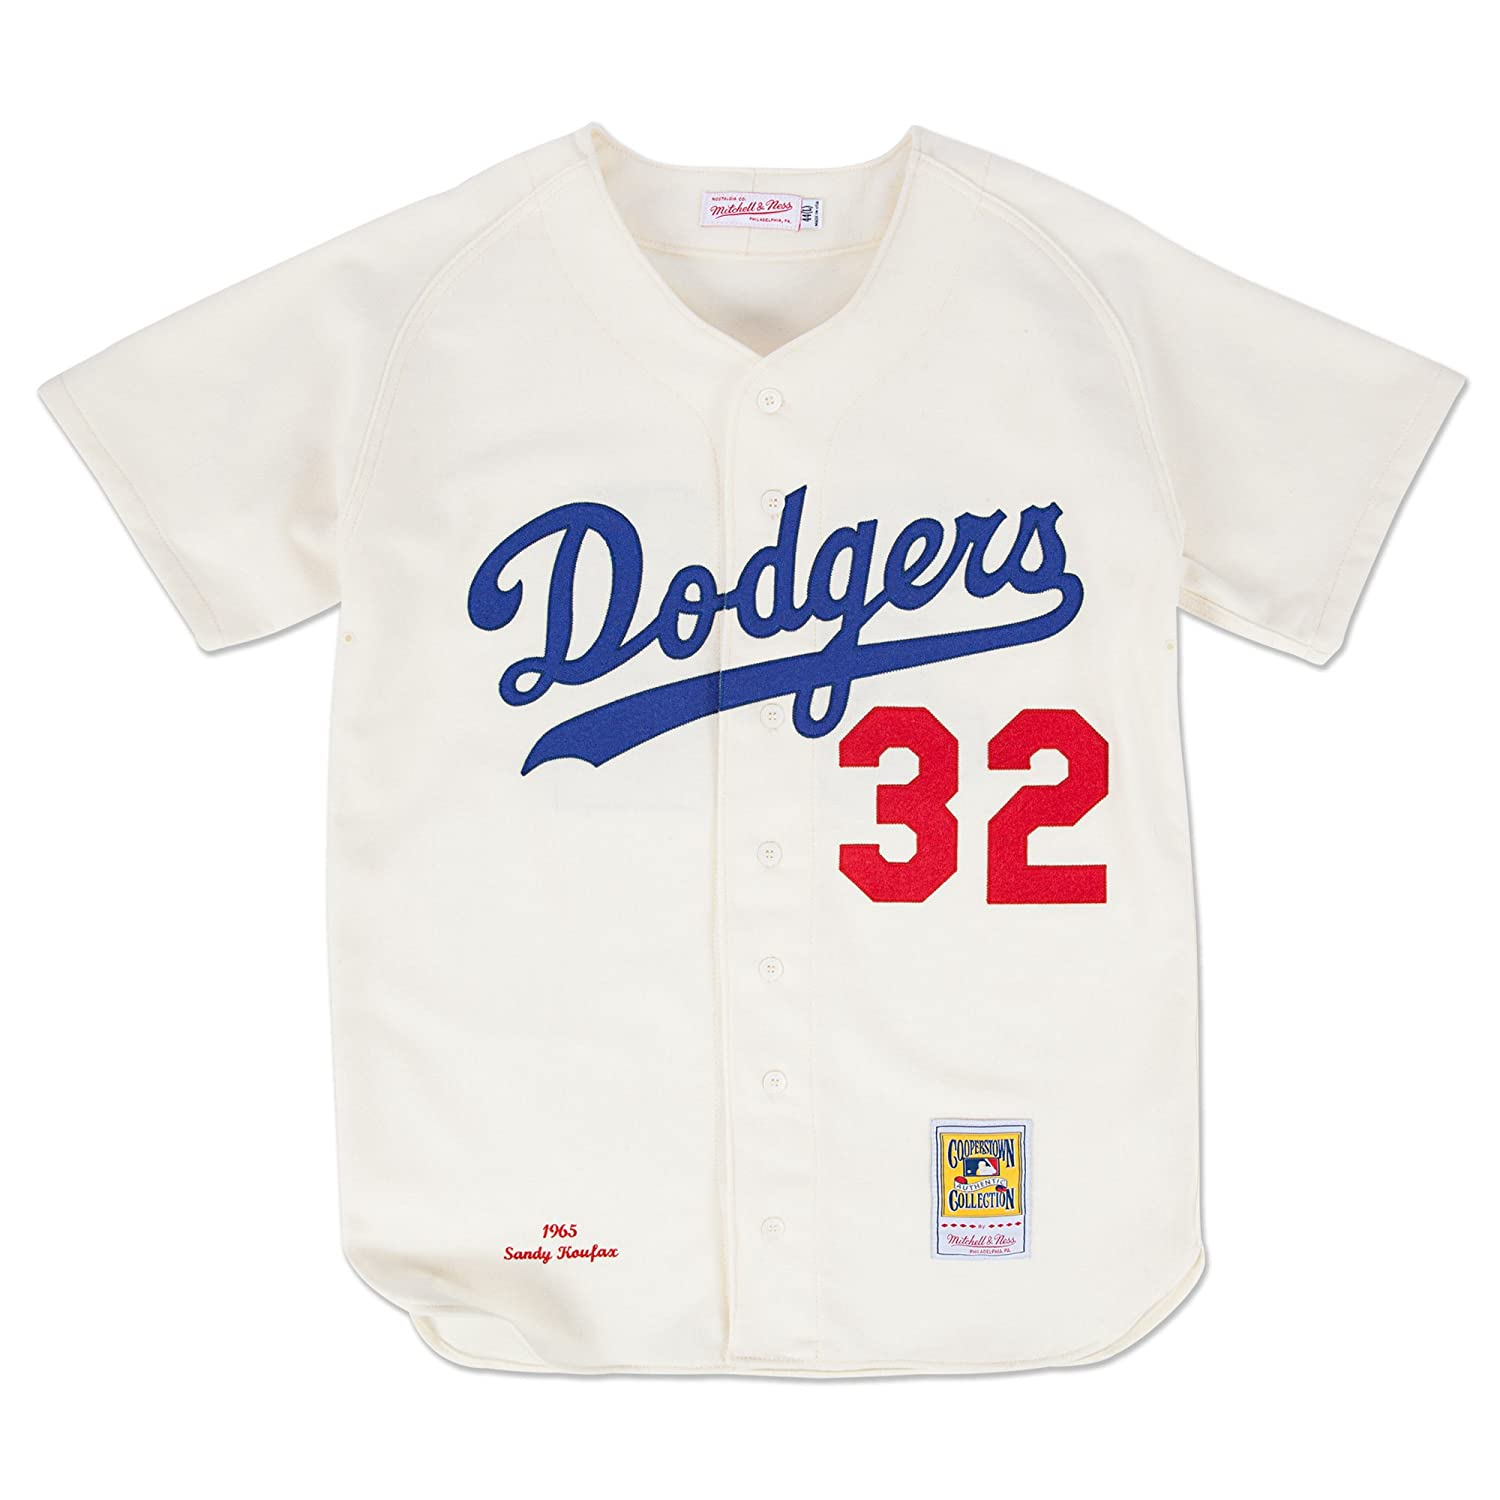 b3ff0dba Sandy Koufax Los Angeles Dodgers Mitchell & Ness Authentic 1965 Button Up  Jersey: Amazon.co.uk: Sports & Outdoors